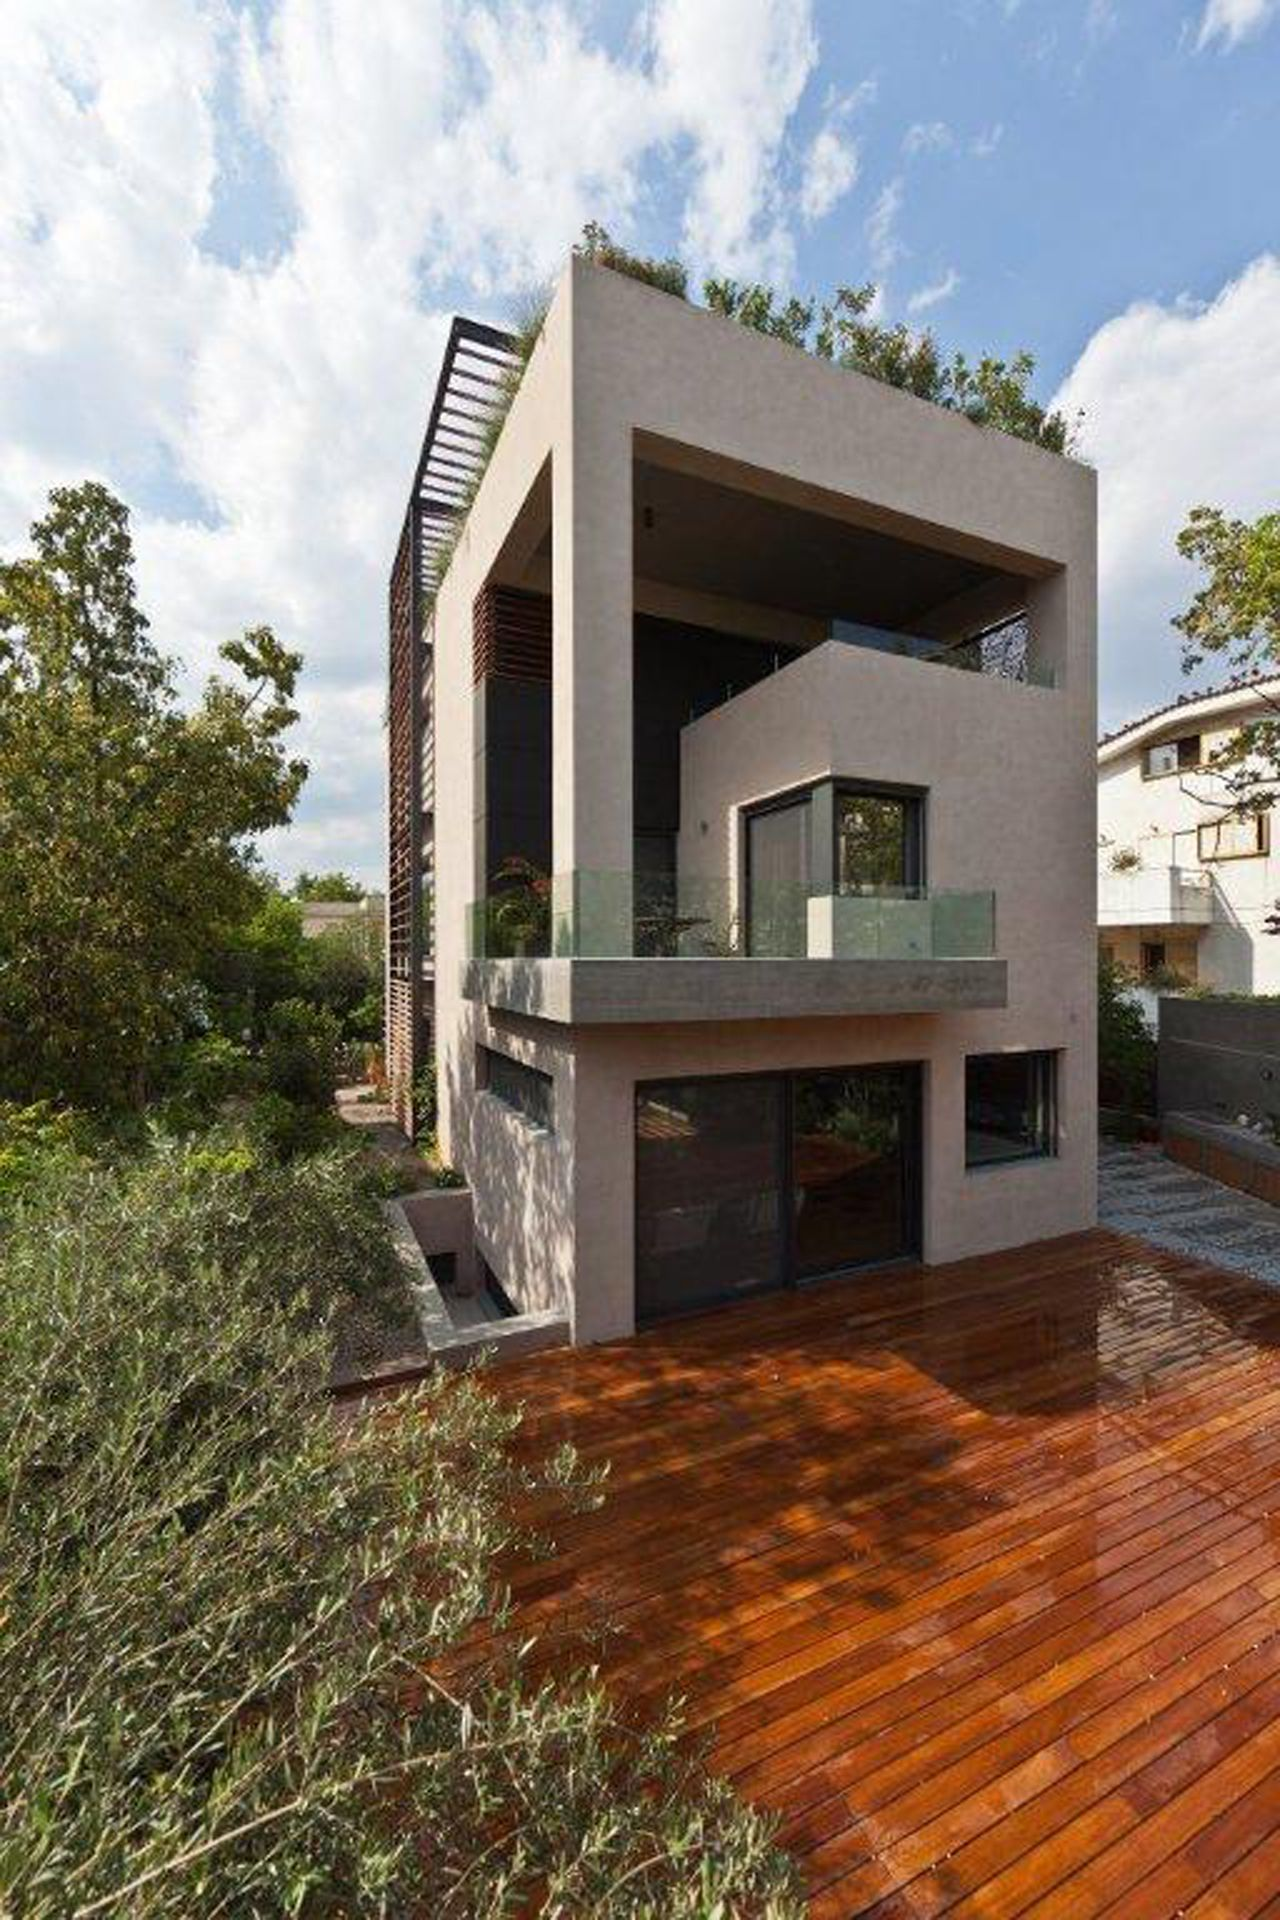 Gallery of Residence in Filothei / Gem Architects - 14 ...